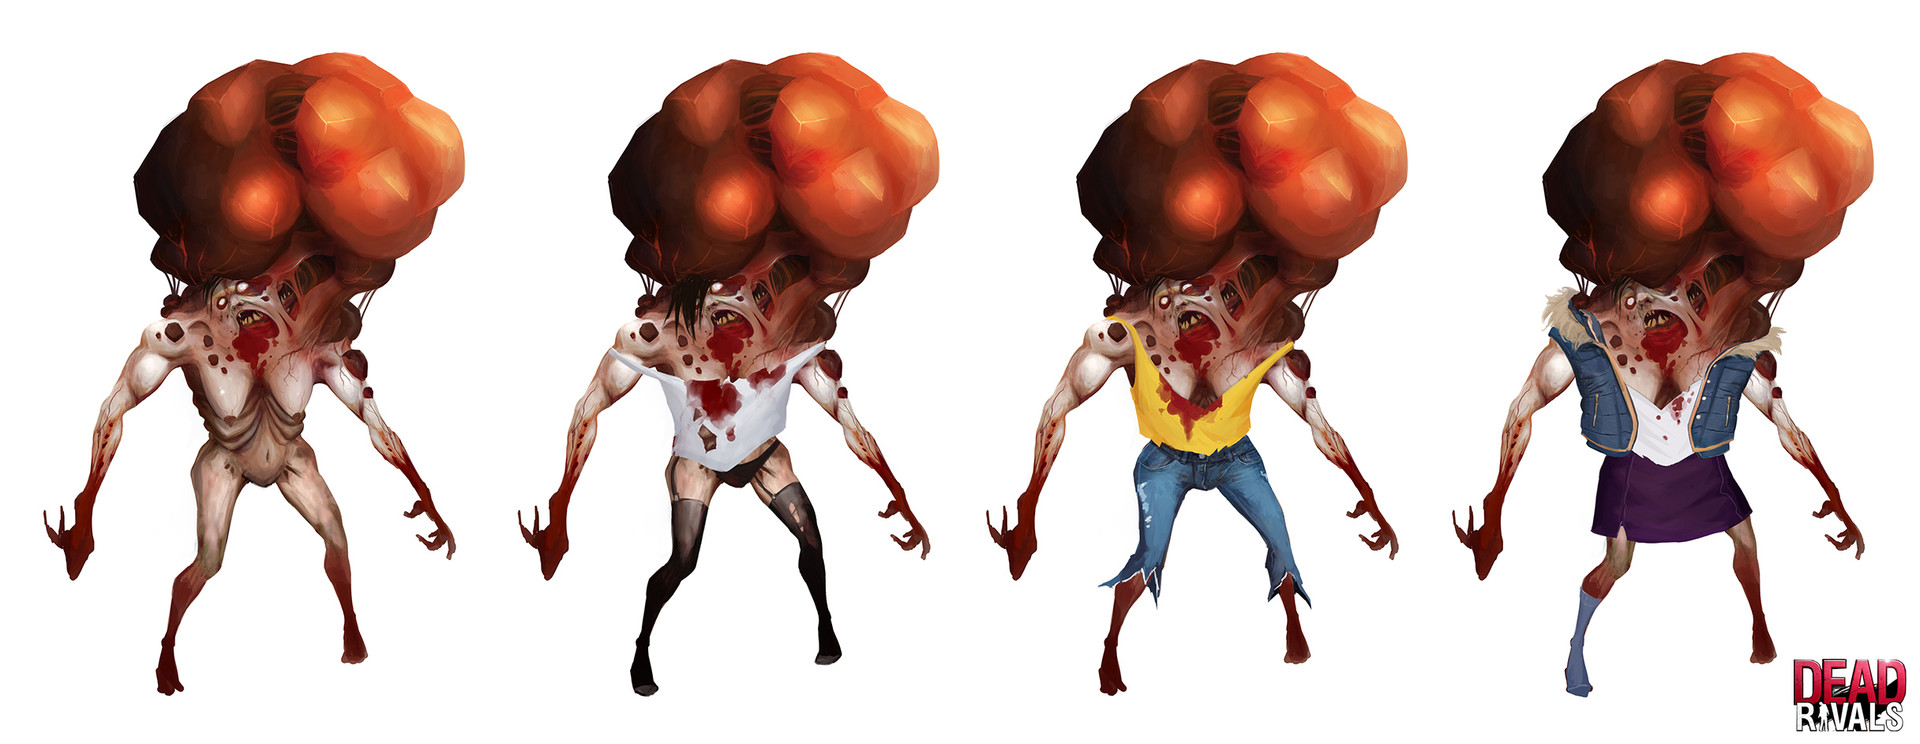 Alexandre chaudret dw characters zombies exploder01